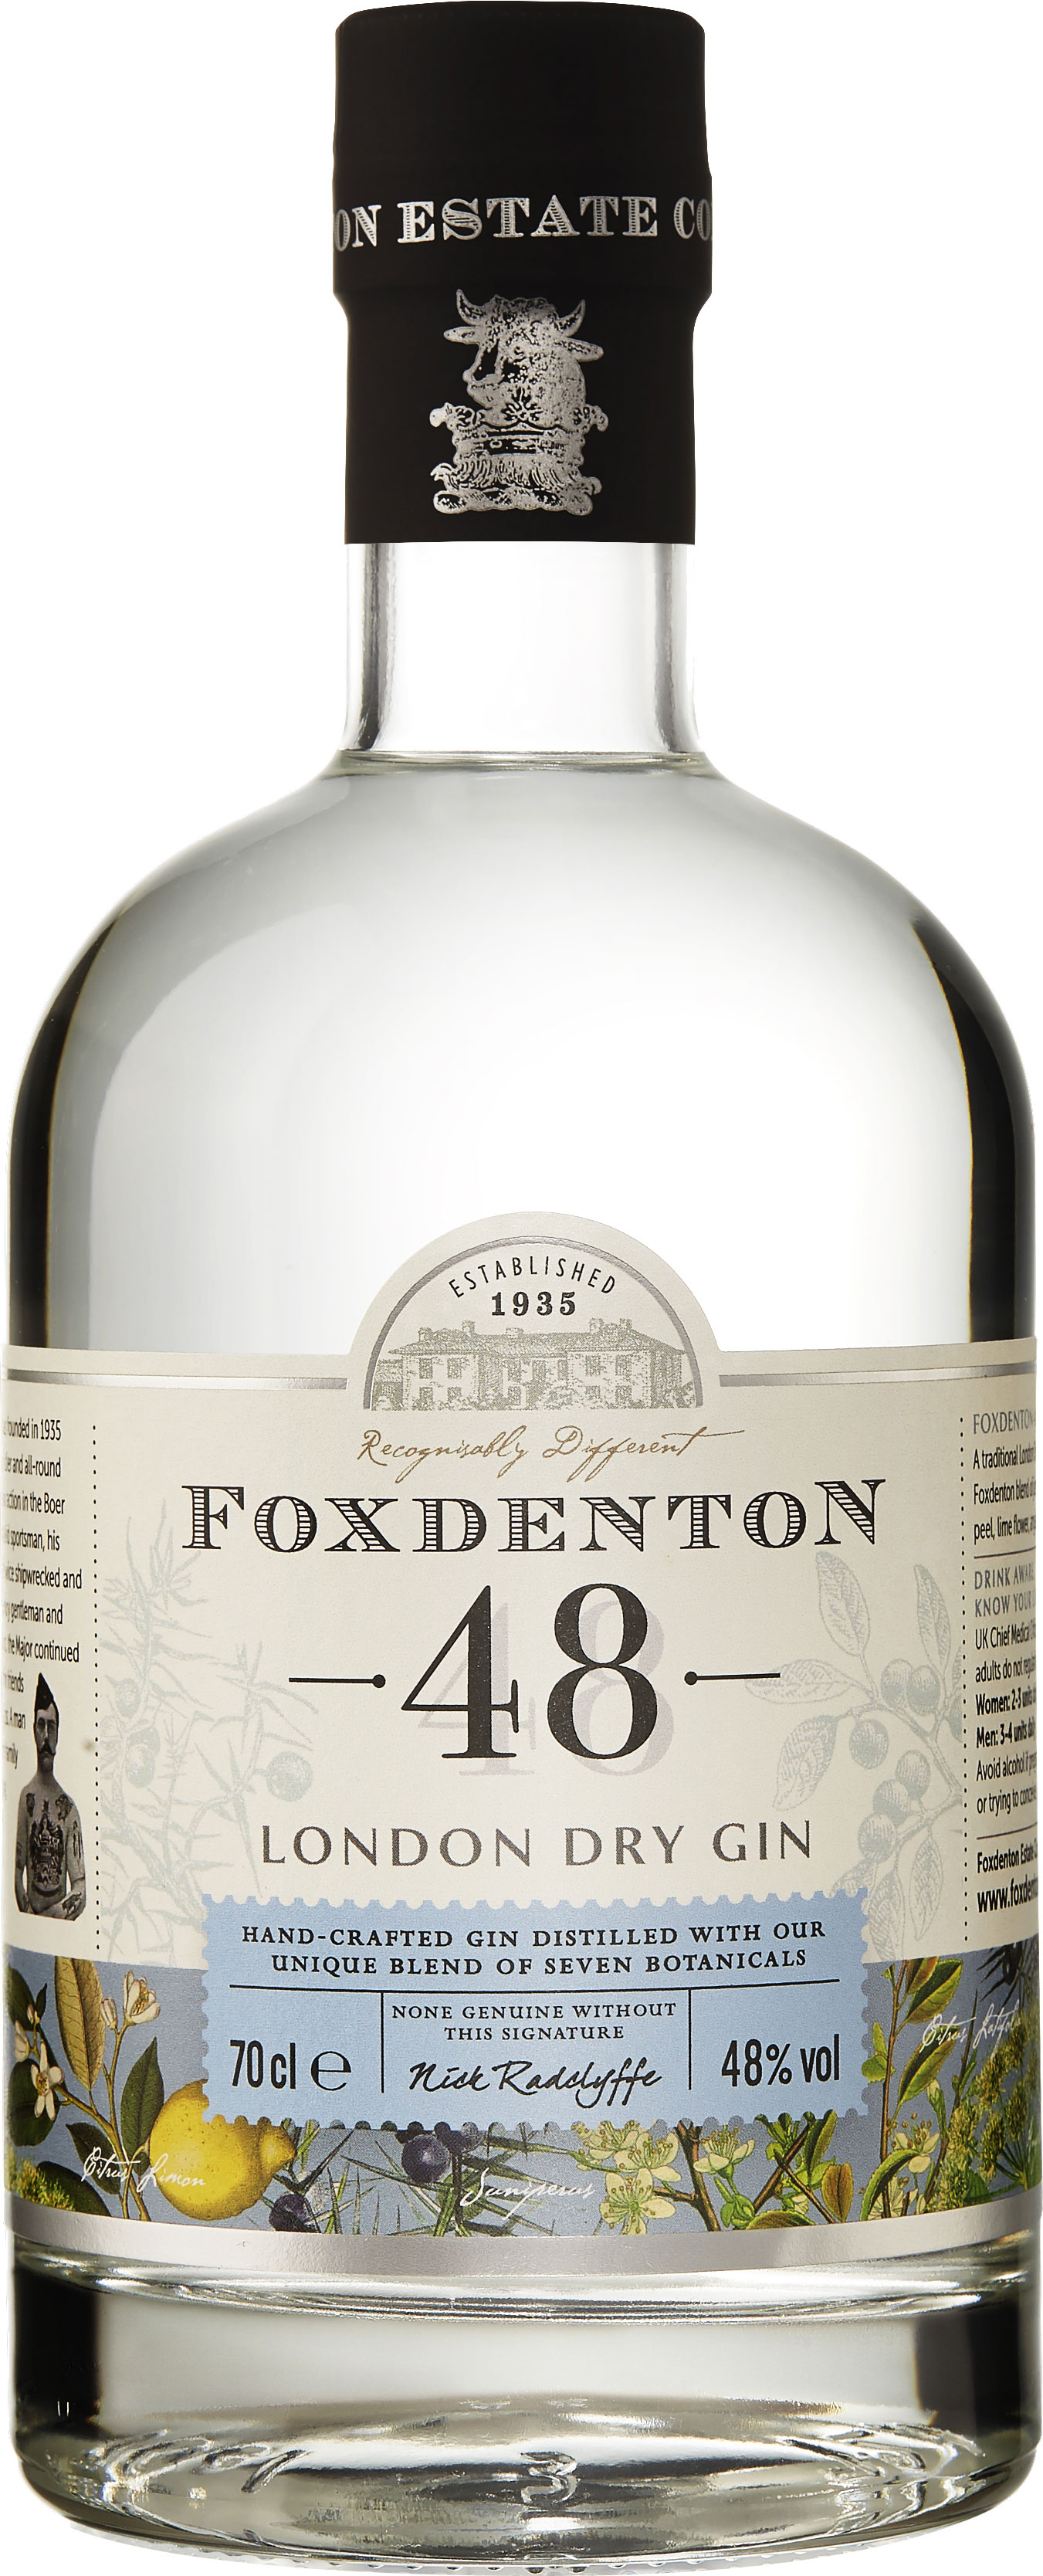 Foxdenton - London Dry Gin 48% 70cl Bottle